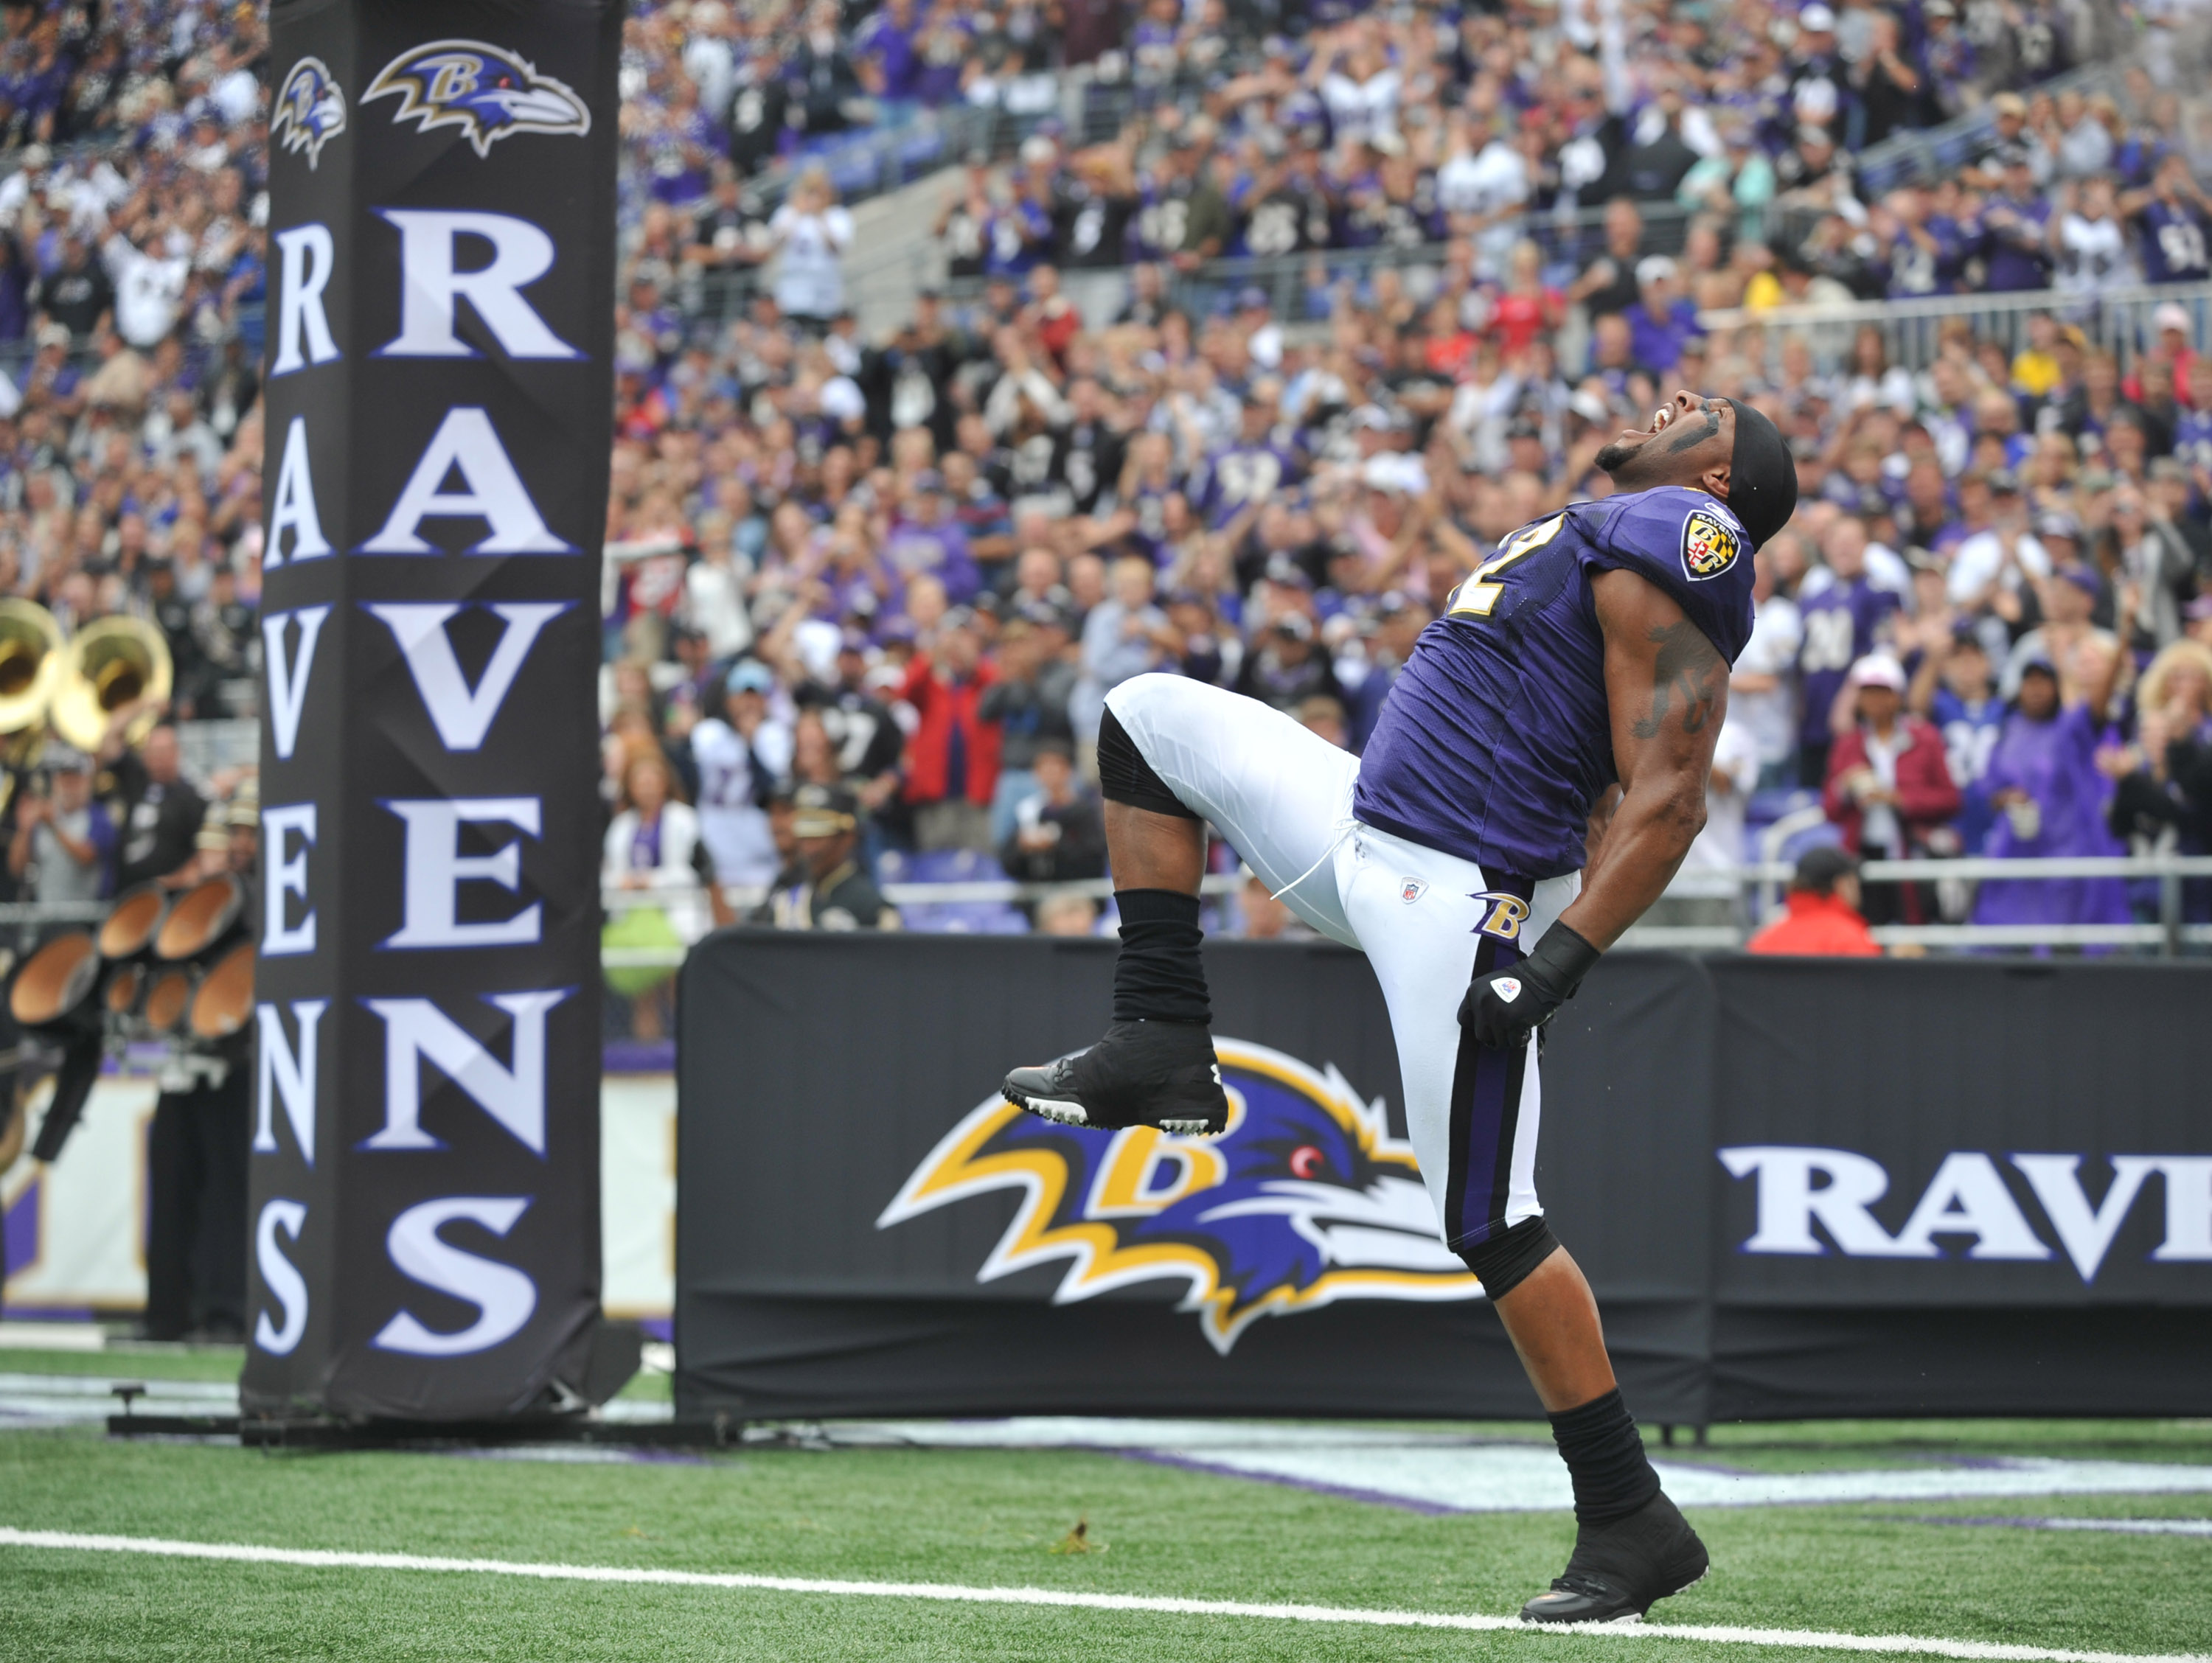 BALTIMORE - SEPTEMBER 26:  Ray Lewis #52 of the Baltimore Ravens is introduced before the game against the Cleveland Browns  at M&T Bank Stadium on September 26, 2010 in Baltimore, Maryland. The Ravens defeated the Browns 24-17. (Photo by Larry French/Get